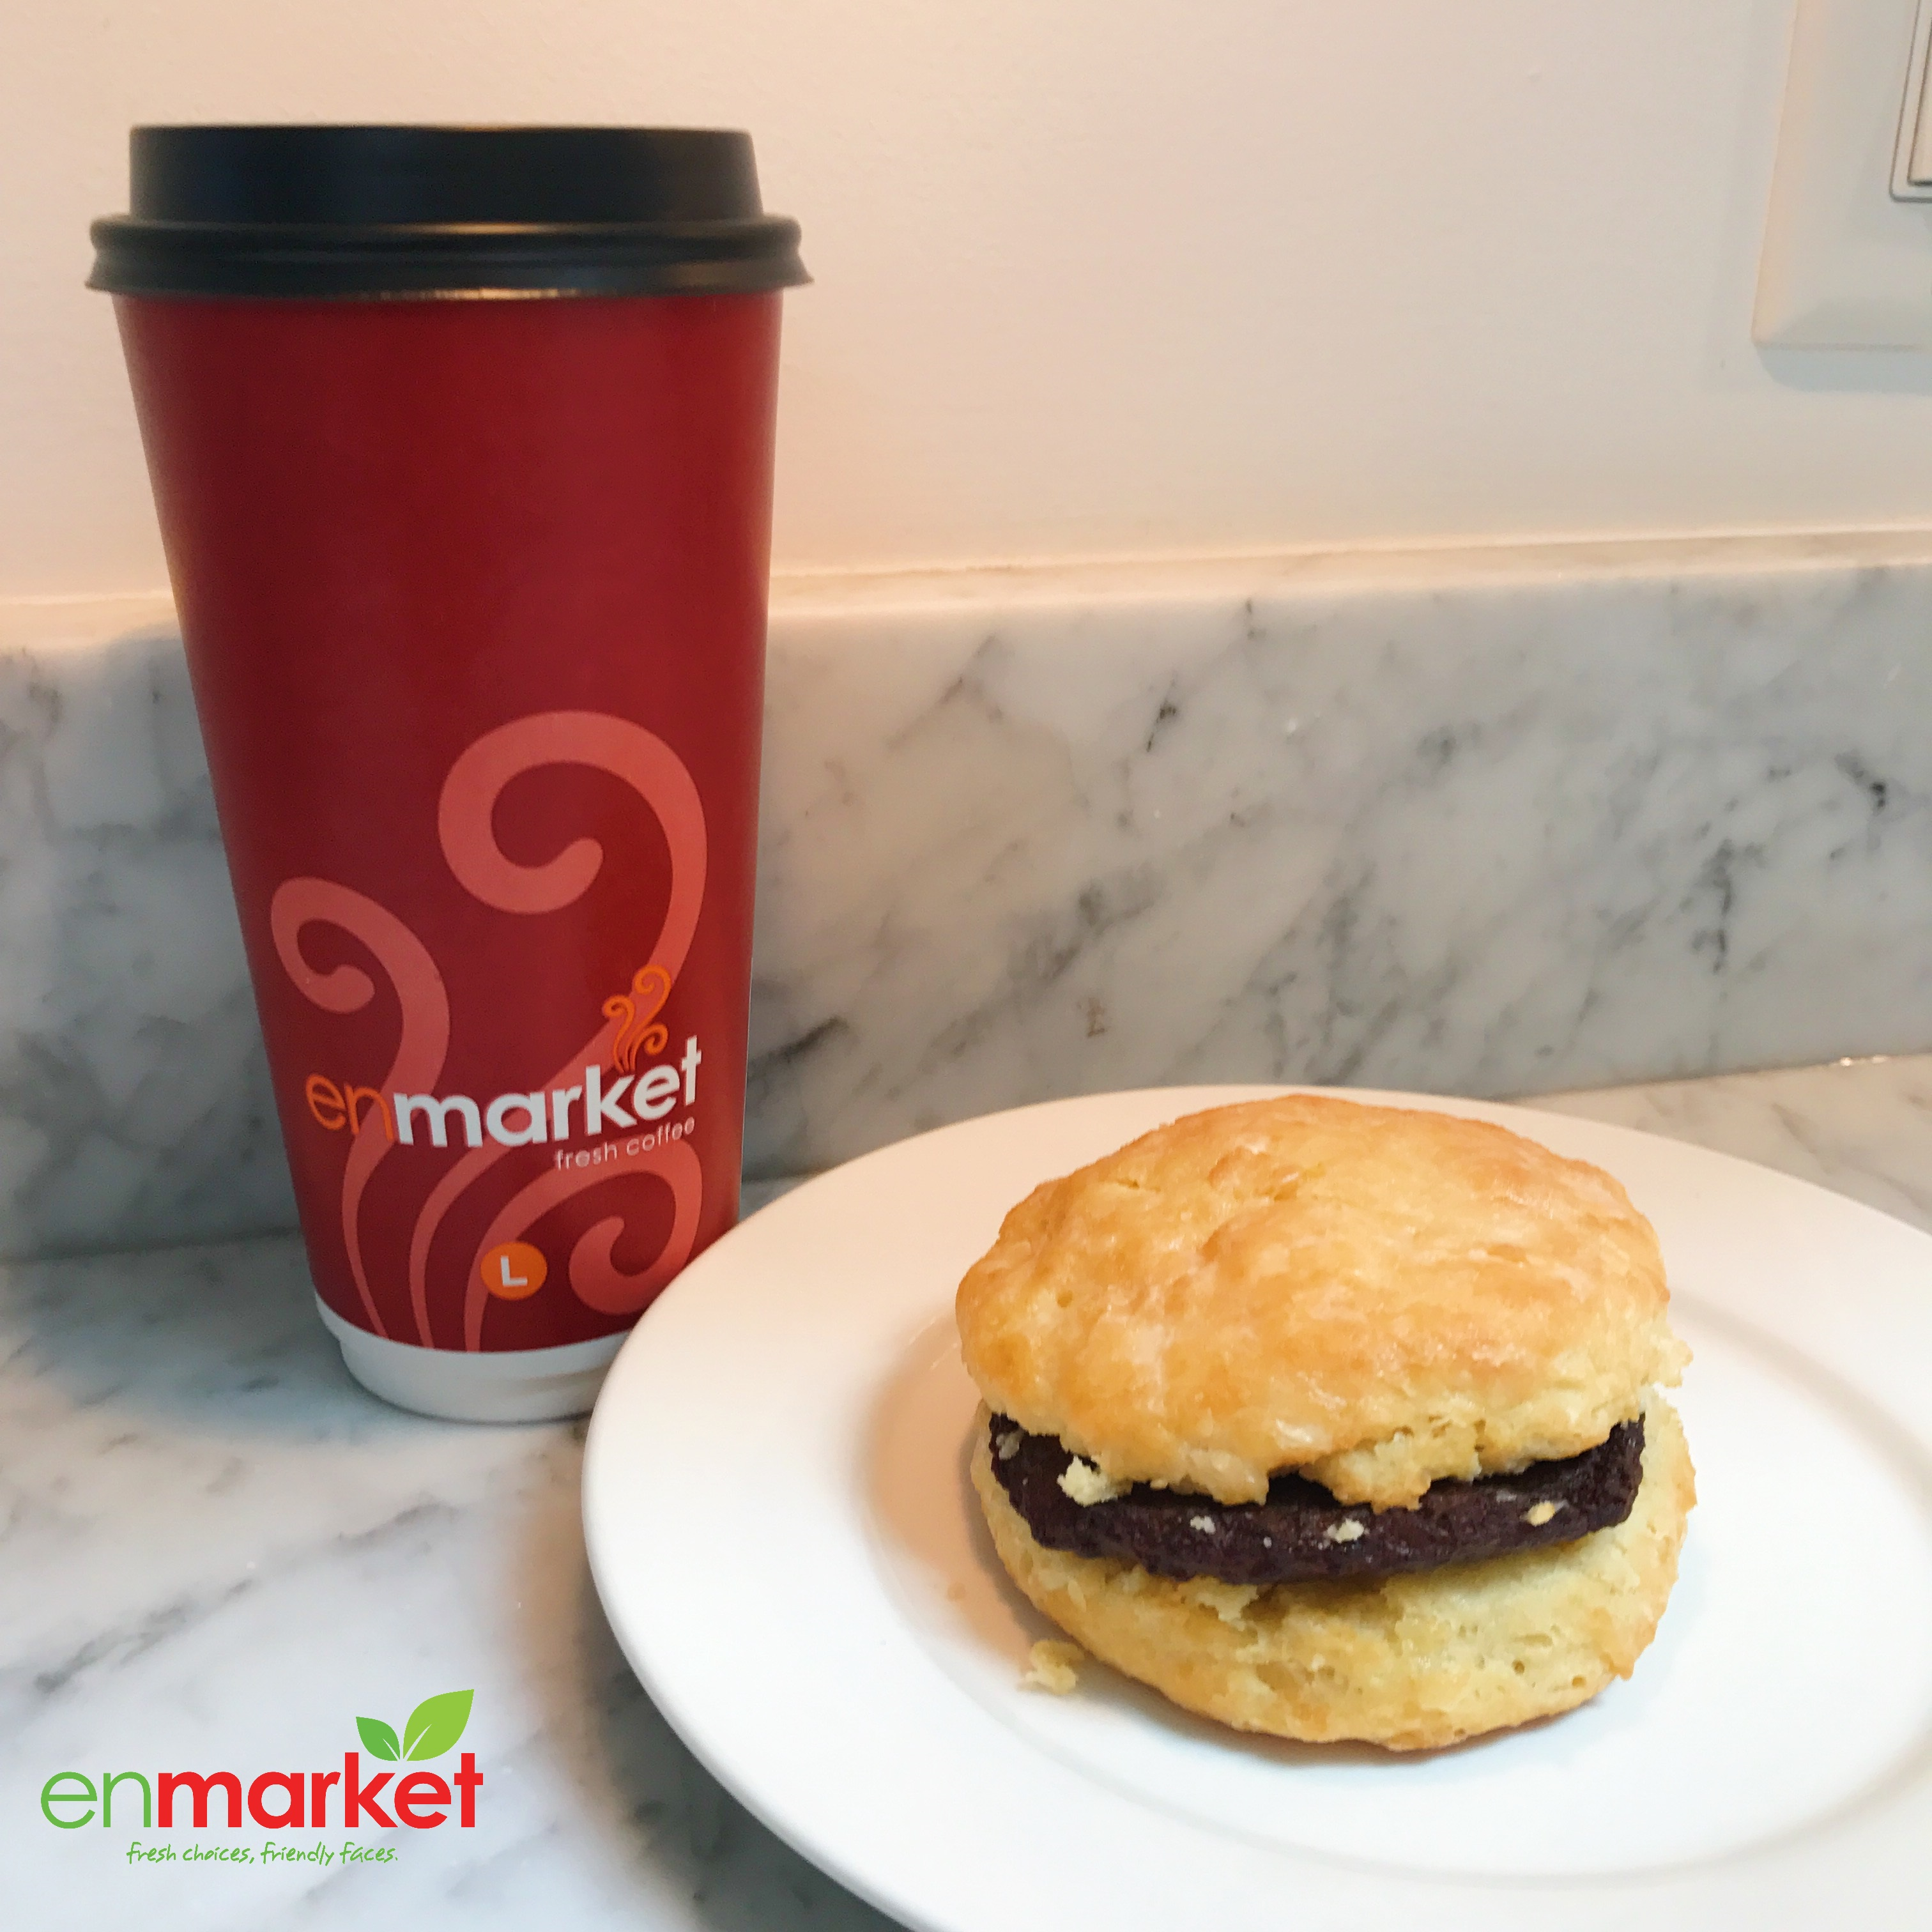 Enmarket Rainforest Coffee and Fresh Made Biscuit